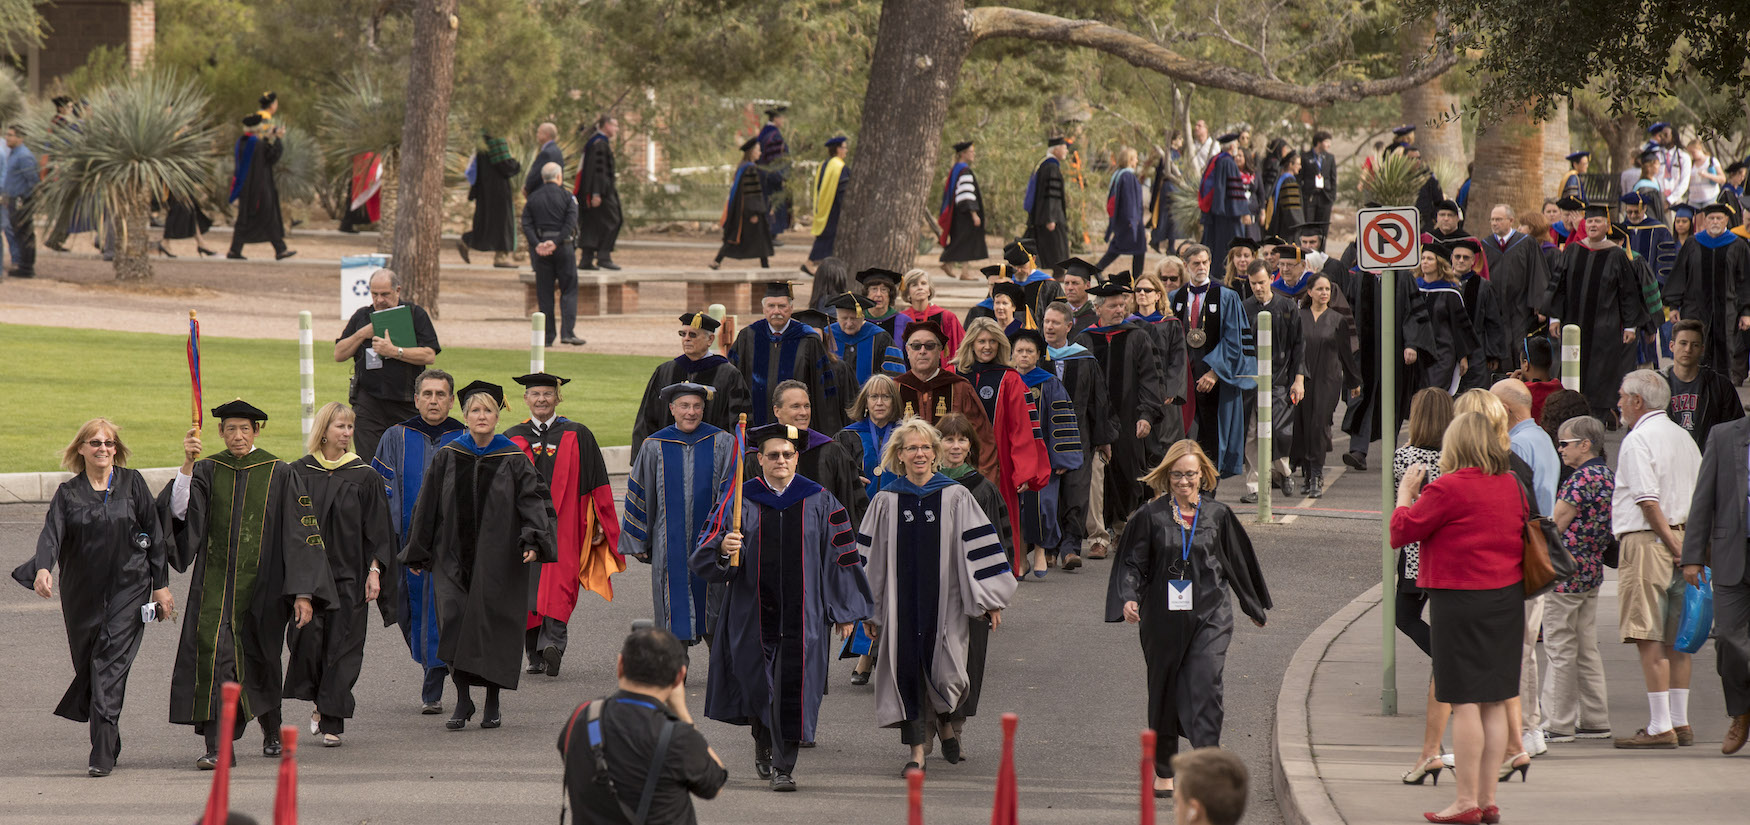 The formal procession heads from Old Main